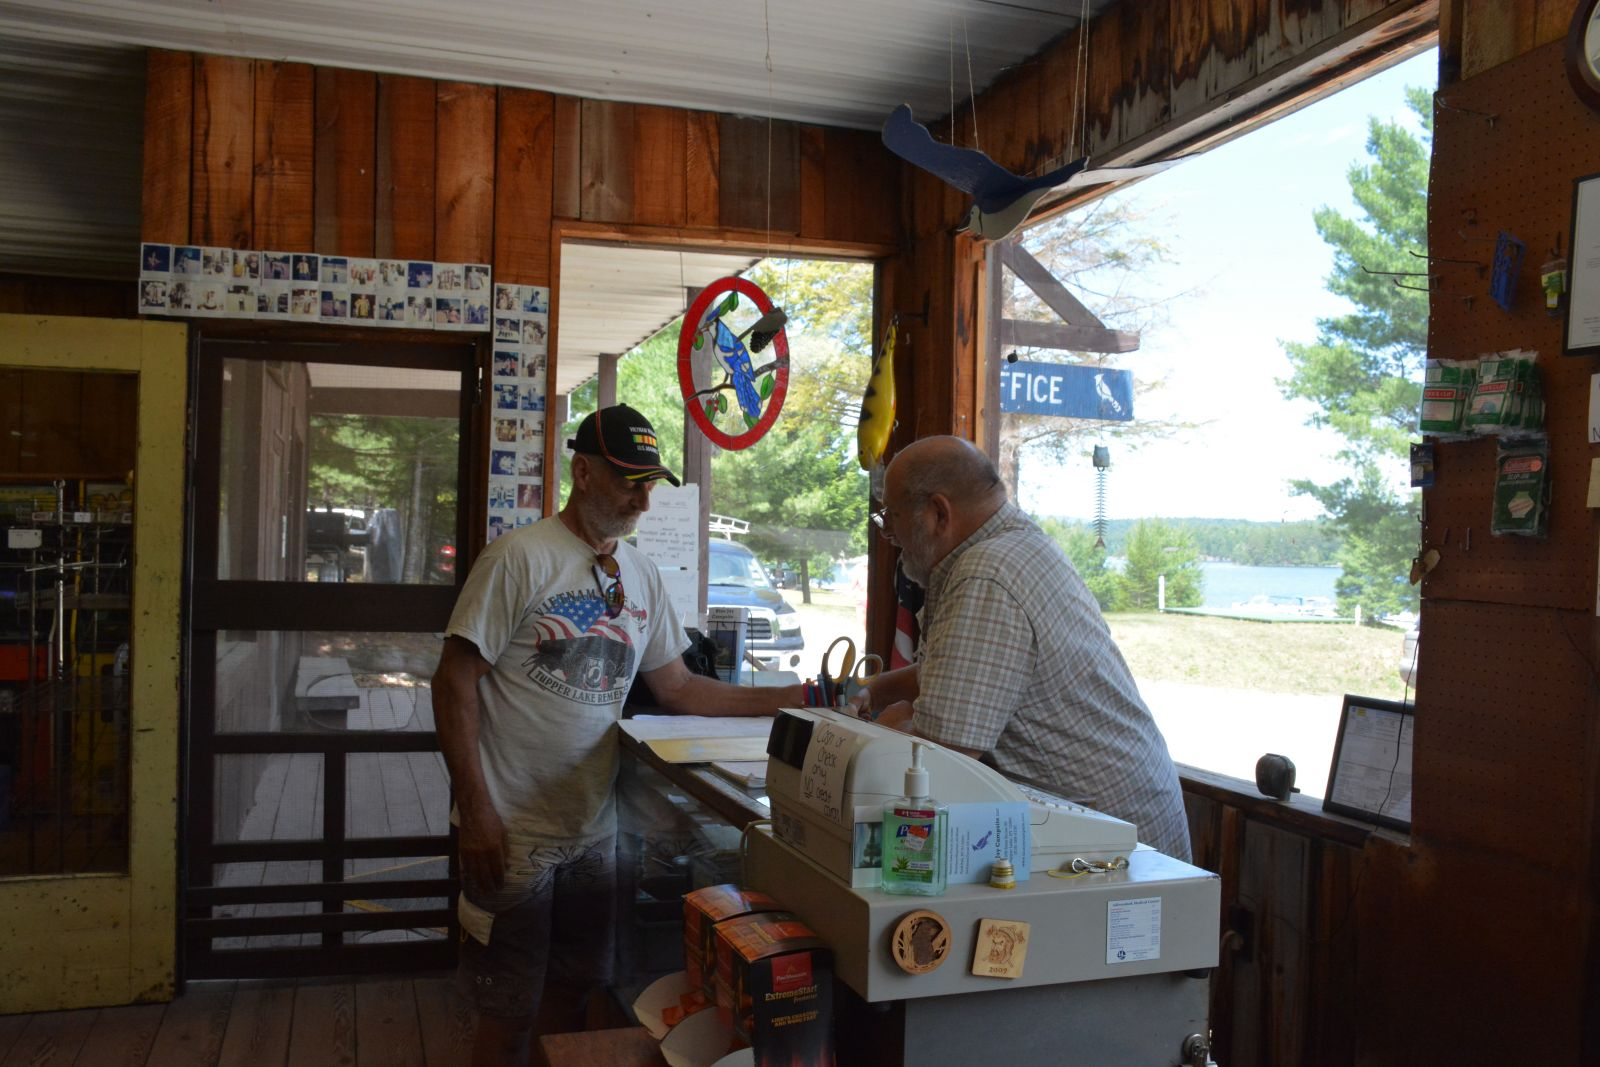 Frank Scotti points out a point of interest to a local visitor in the Blue Jay Campsite office.